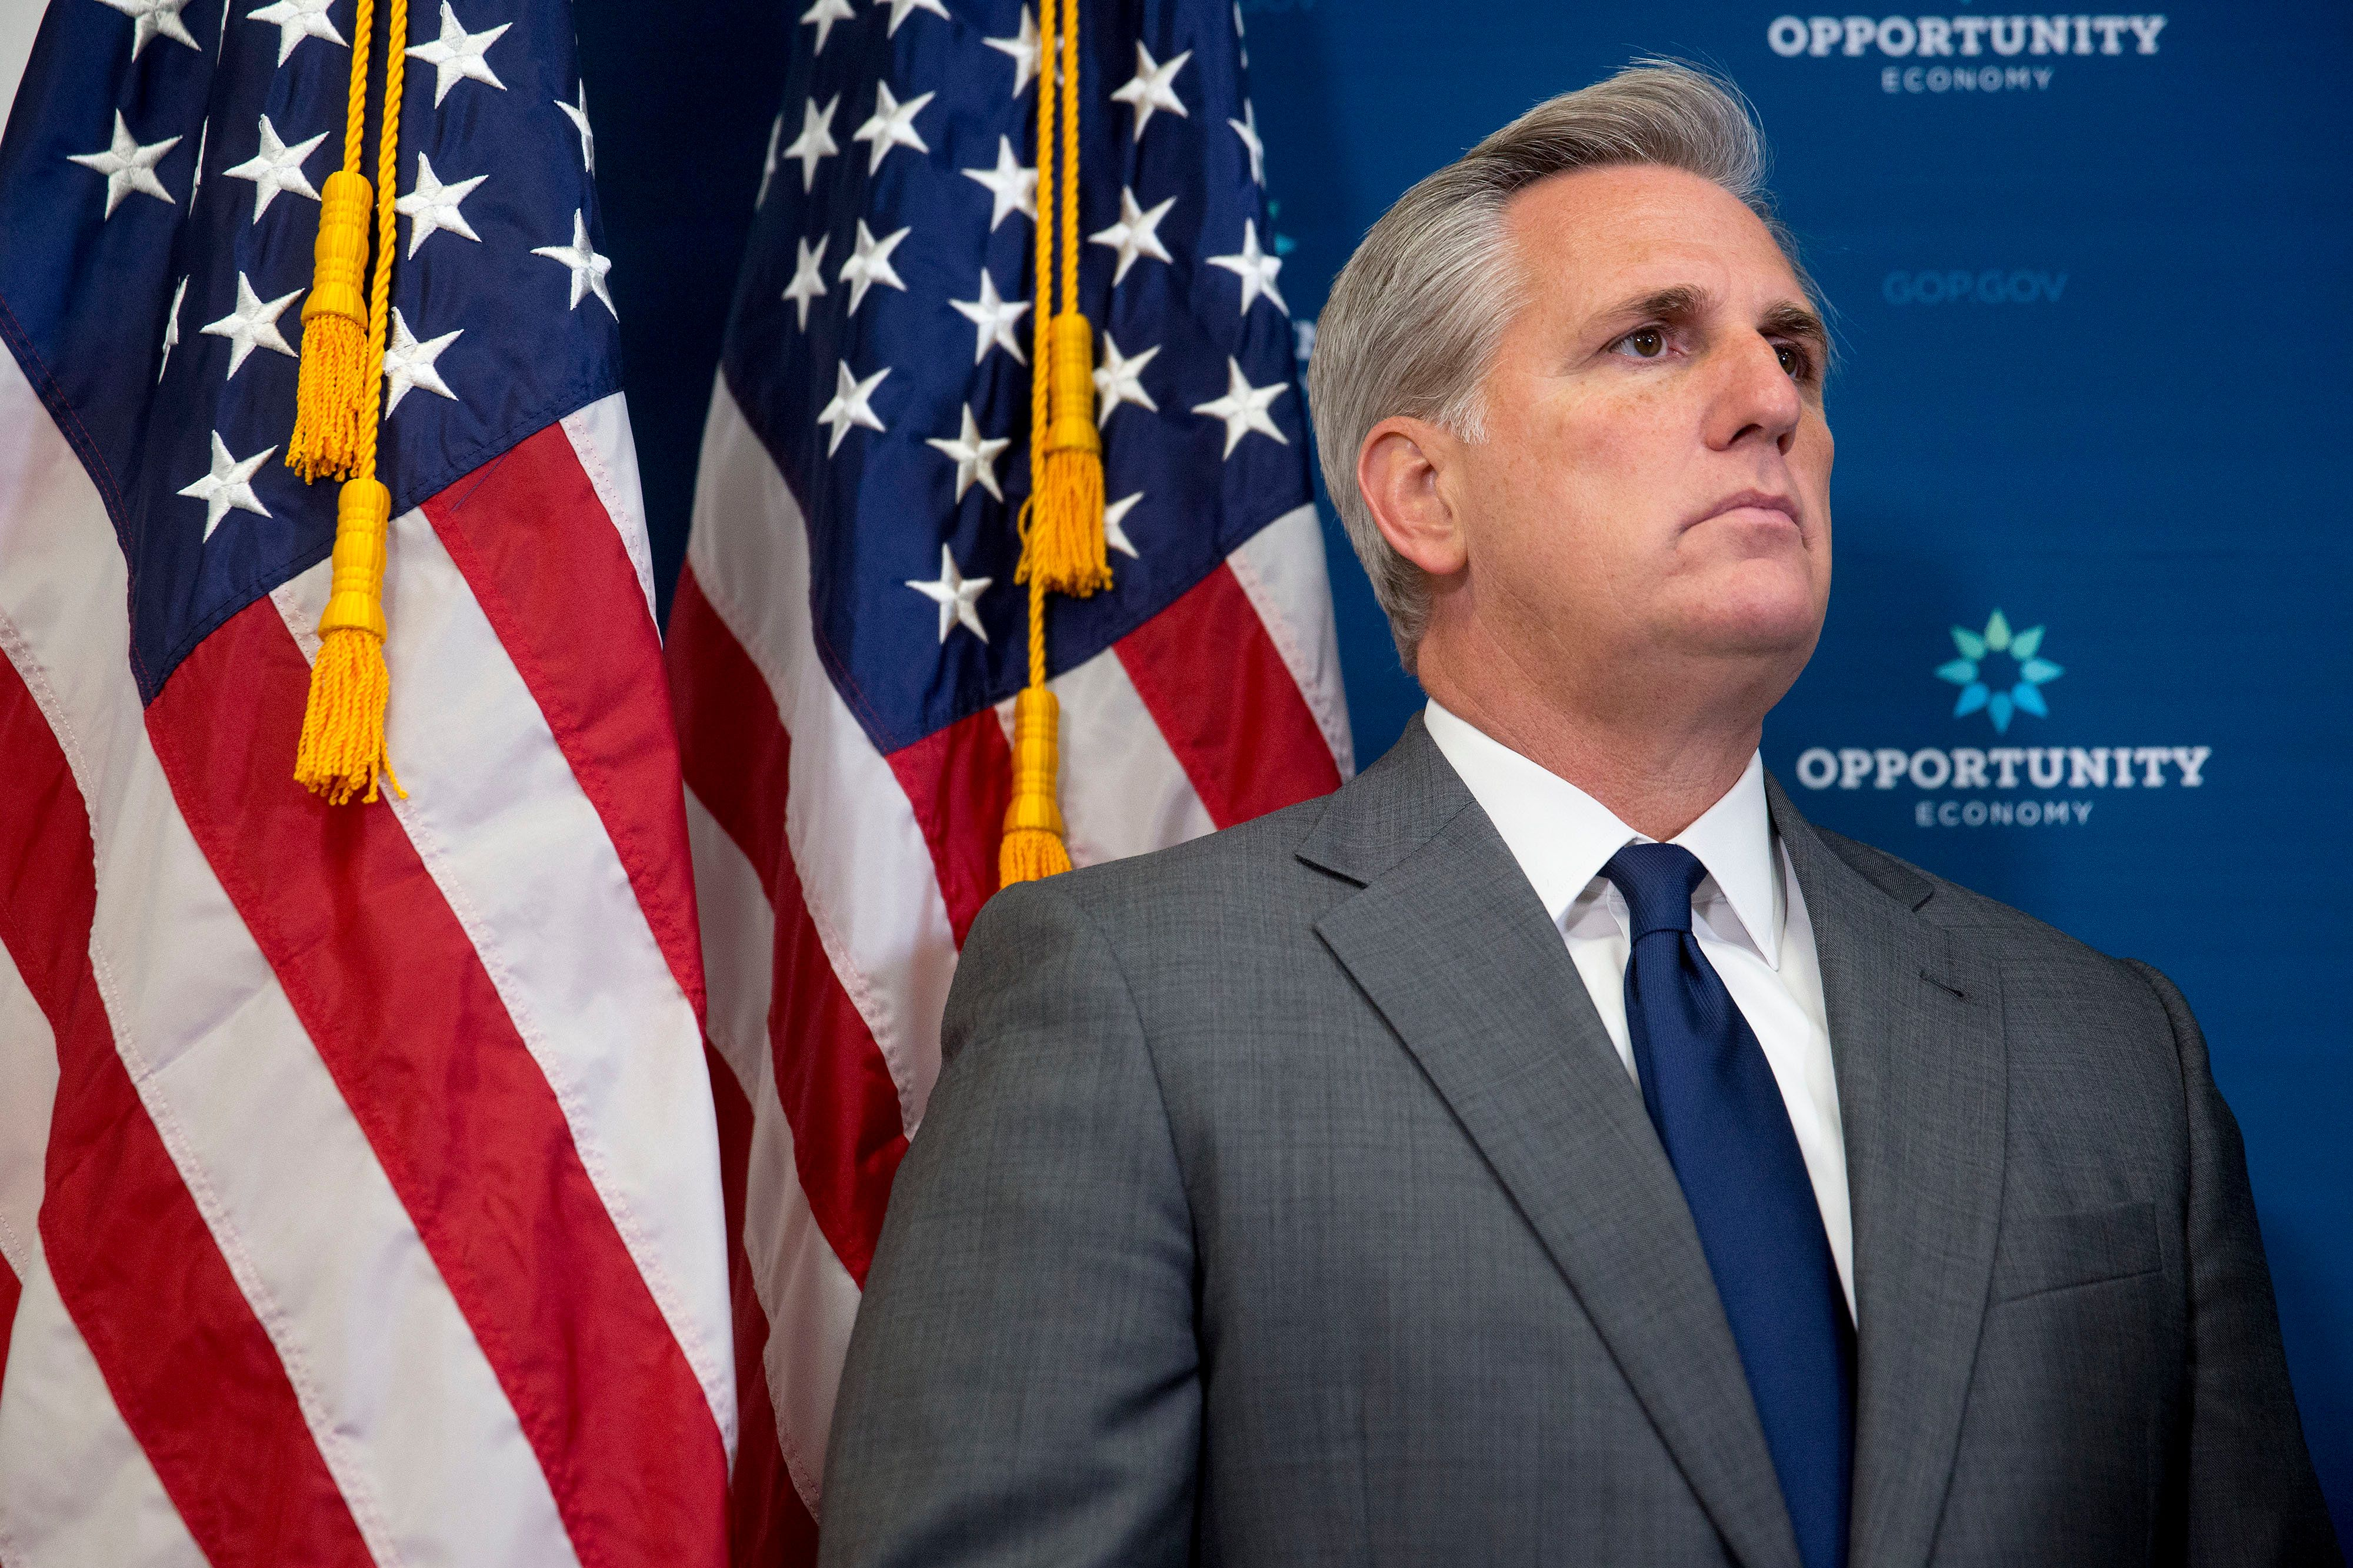 House Majority Leader Kevin McCarthy, a Republican from California, listens during a news conference after a House Republican Conference meeting at the U.S. Capitol in Washington, D.C., U.S., Tuesday, July 28, 2015. The U.S. House plans to vote on a three-month highway funding bill Wednesday and leave for a summer break without considering a longer-term measure now before the Senate, Speaker John Boehner said. Photographer: Andrew Harrer/Bloomberg via Getty Images